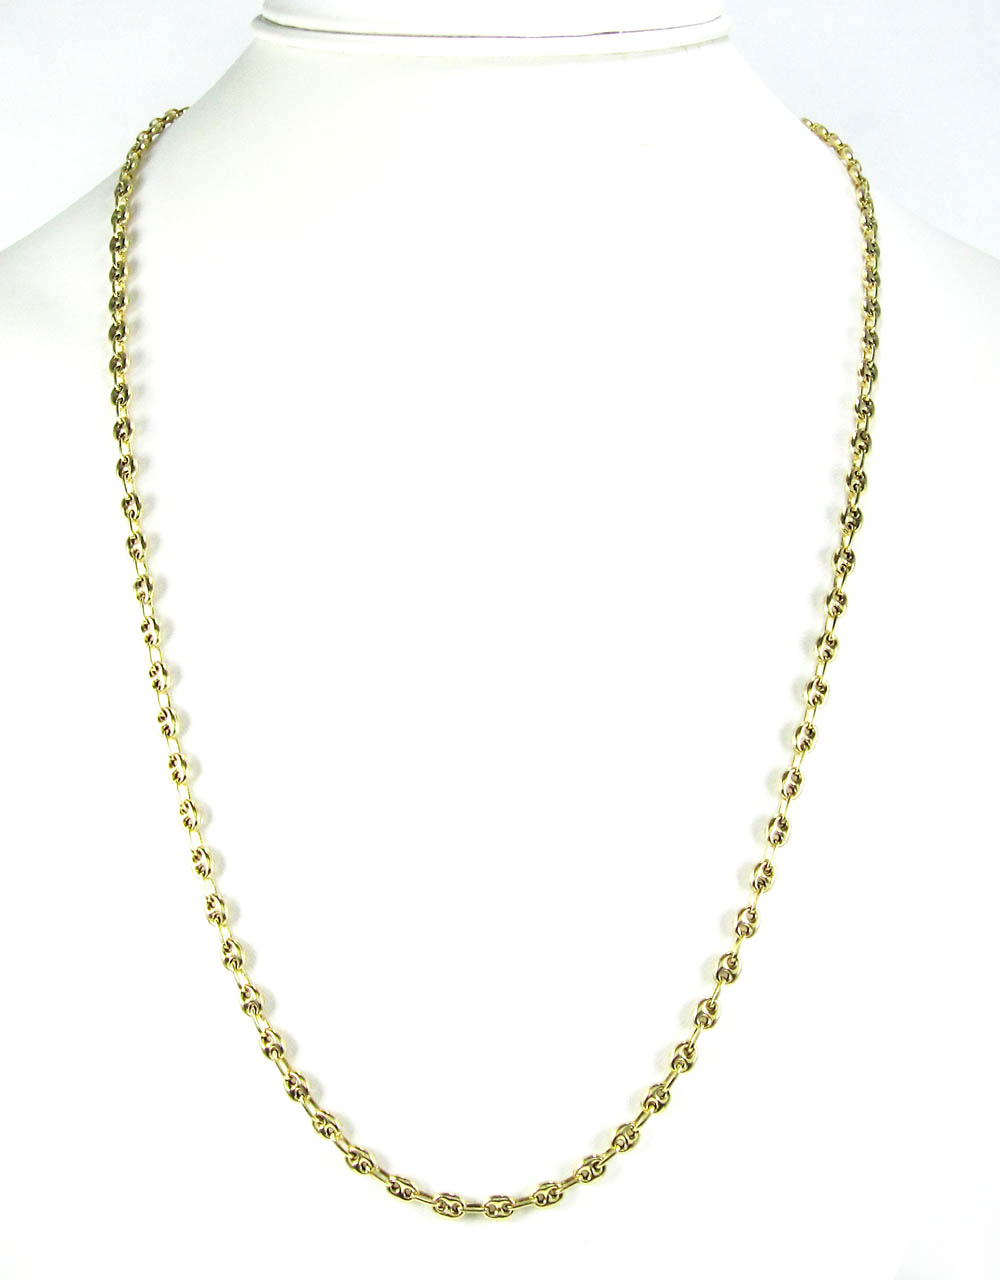 14k yellow gold gucci link chain 20-24 inch 4.10mm